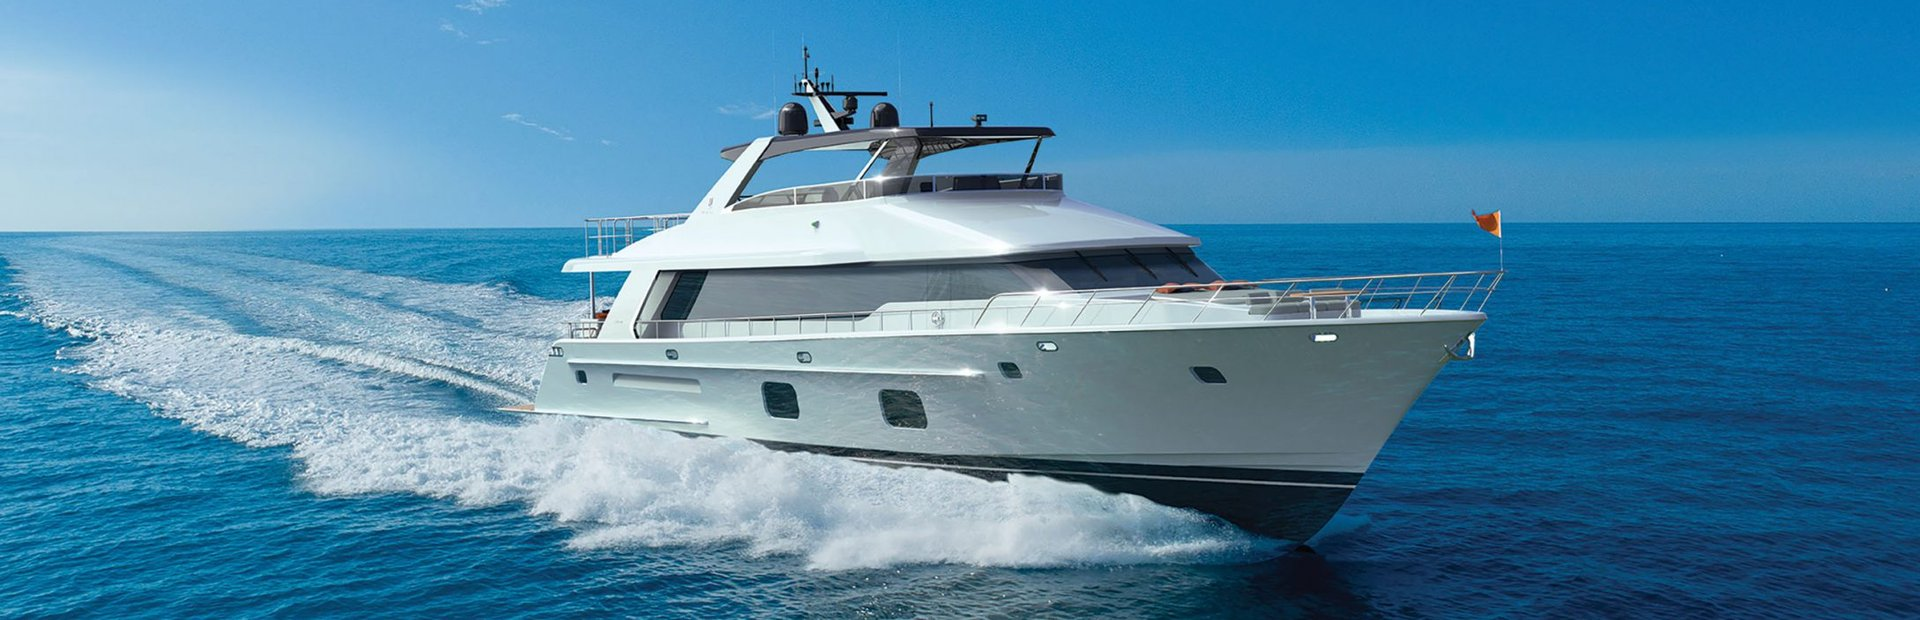 CLB88 Yacht Charter